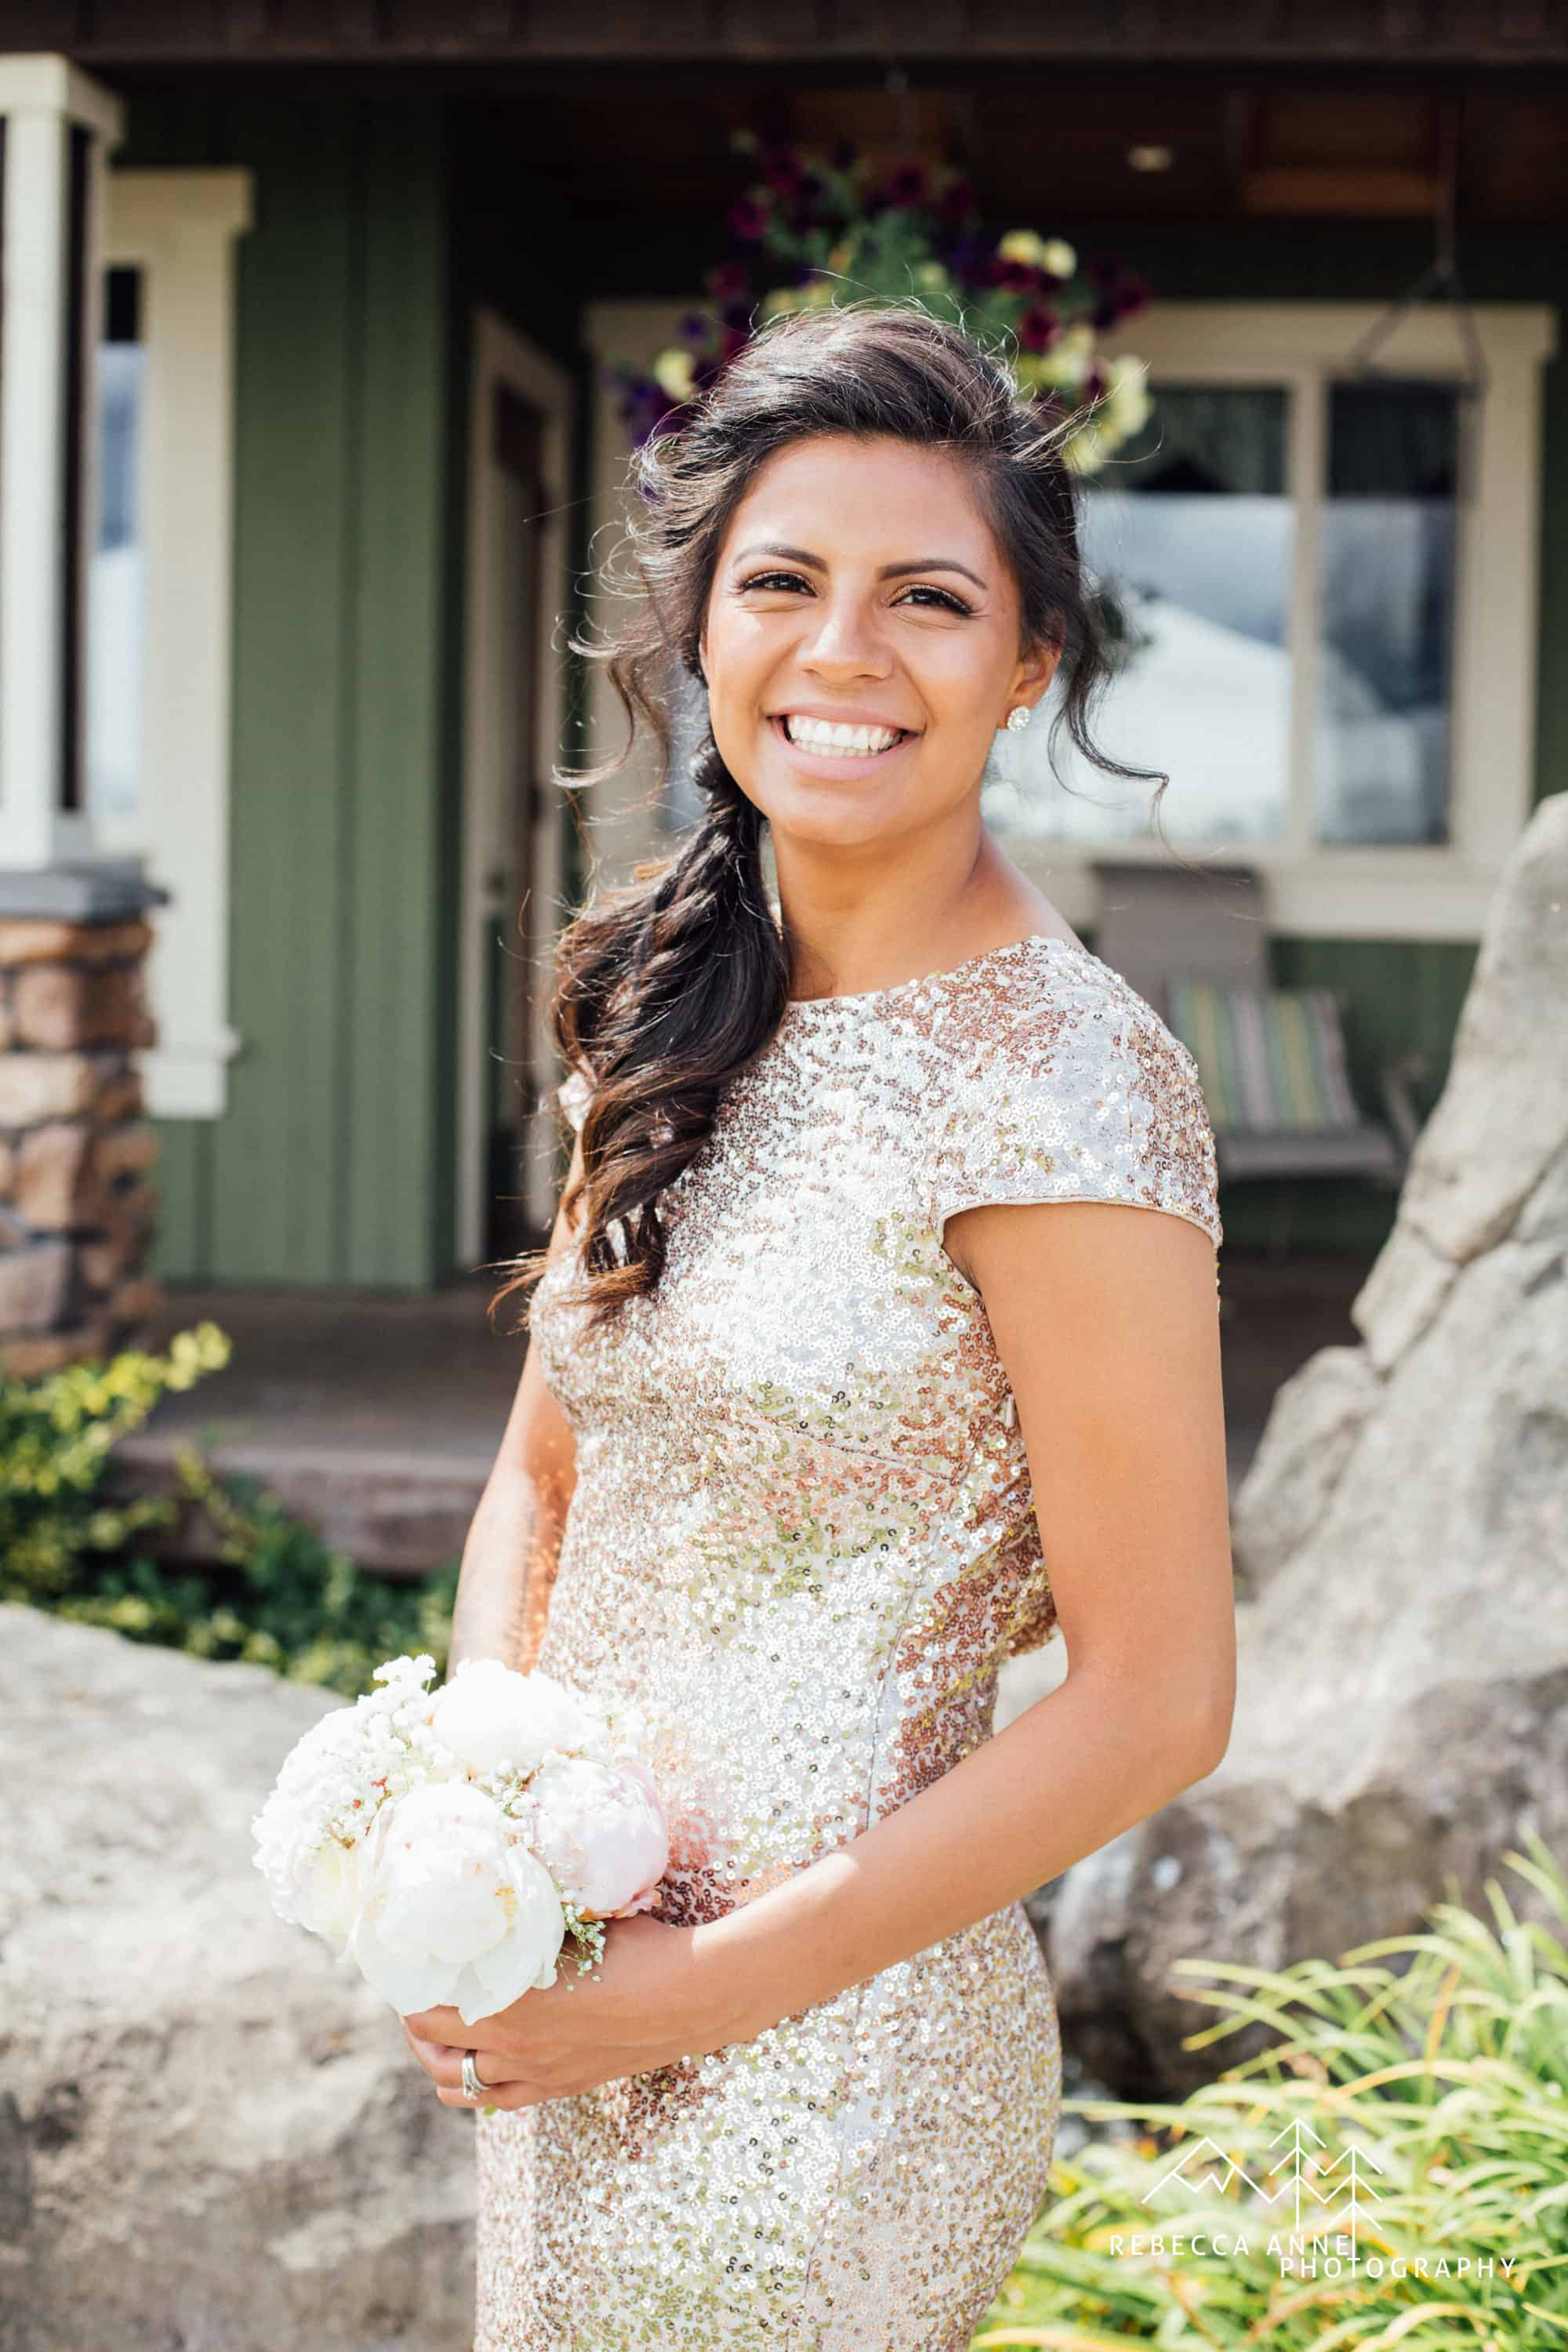 Rose Gold Sequin Bridesmaid Dress Rebecca & Kevin Rose Gold Wedding at Mountain View Manor Rebecca Anne Photography